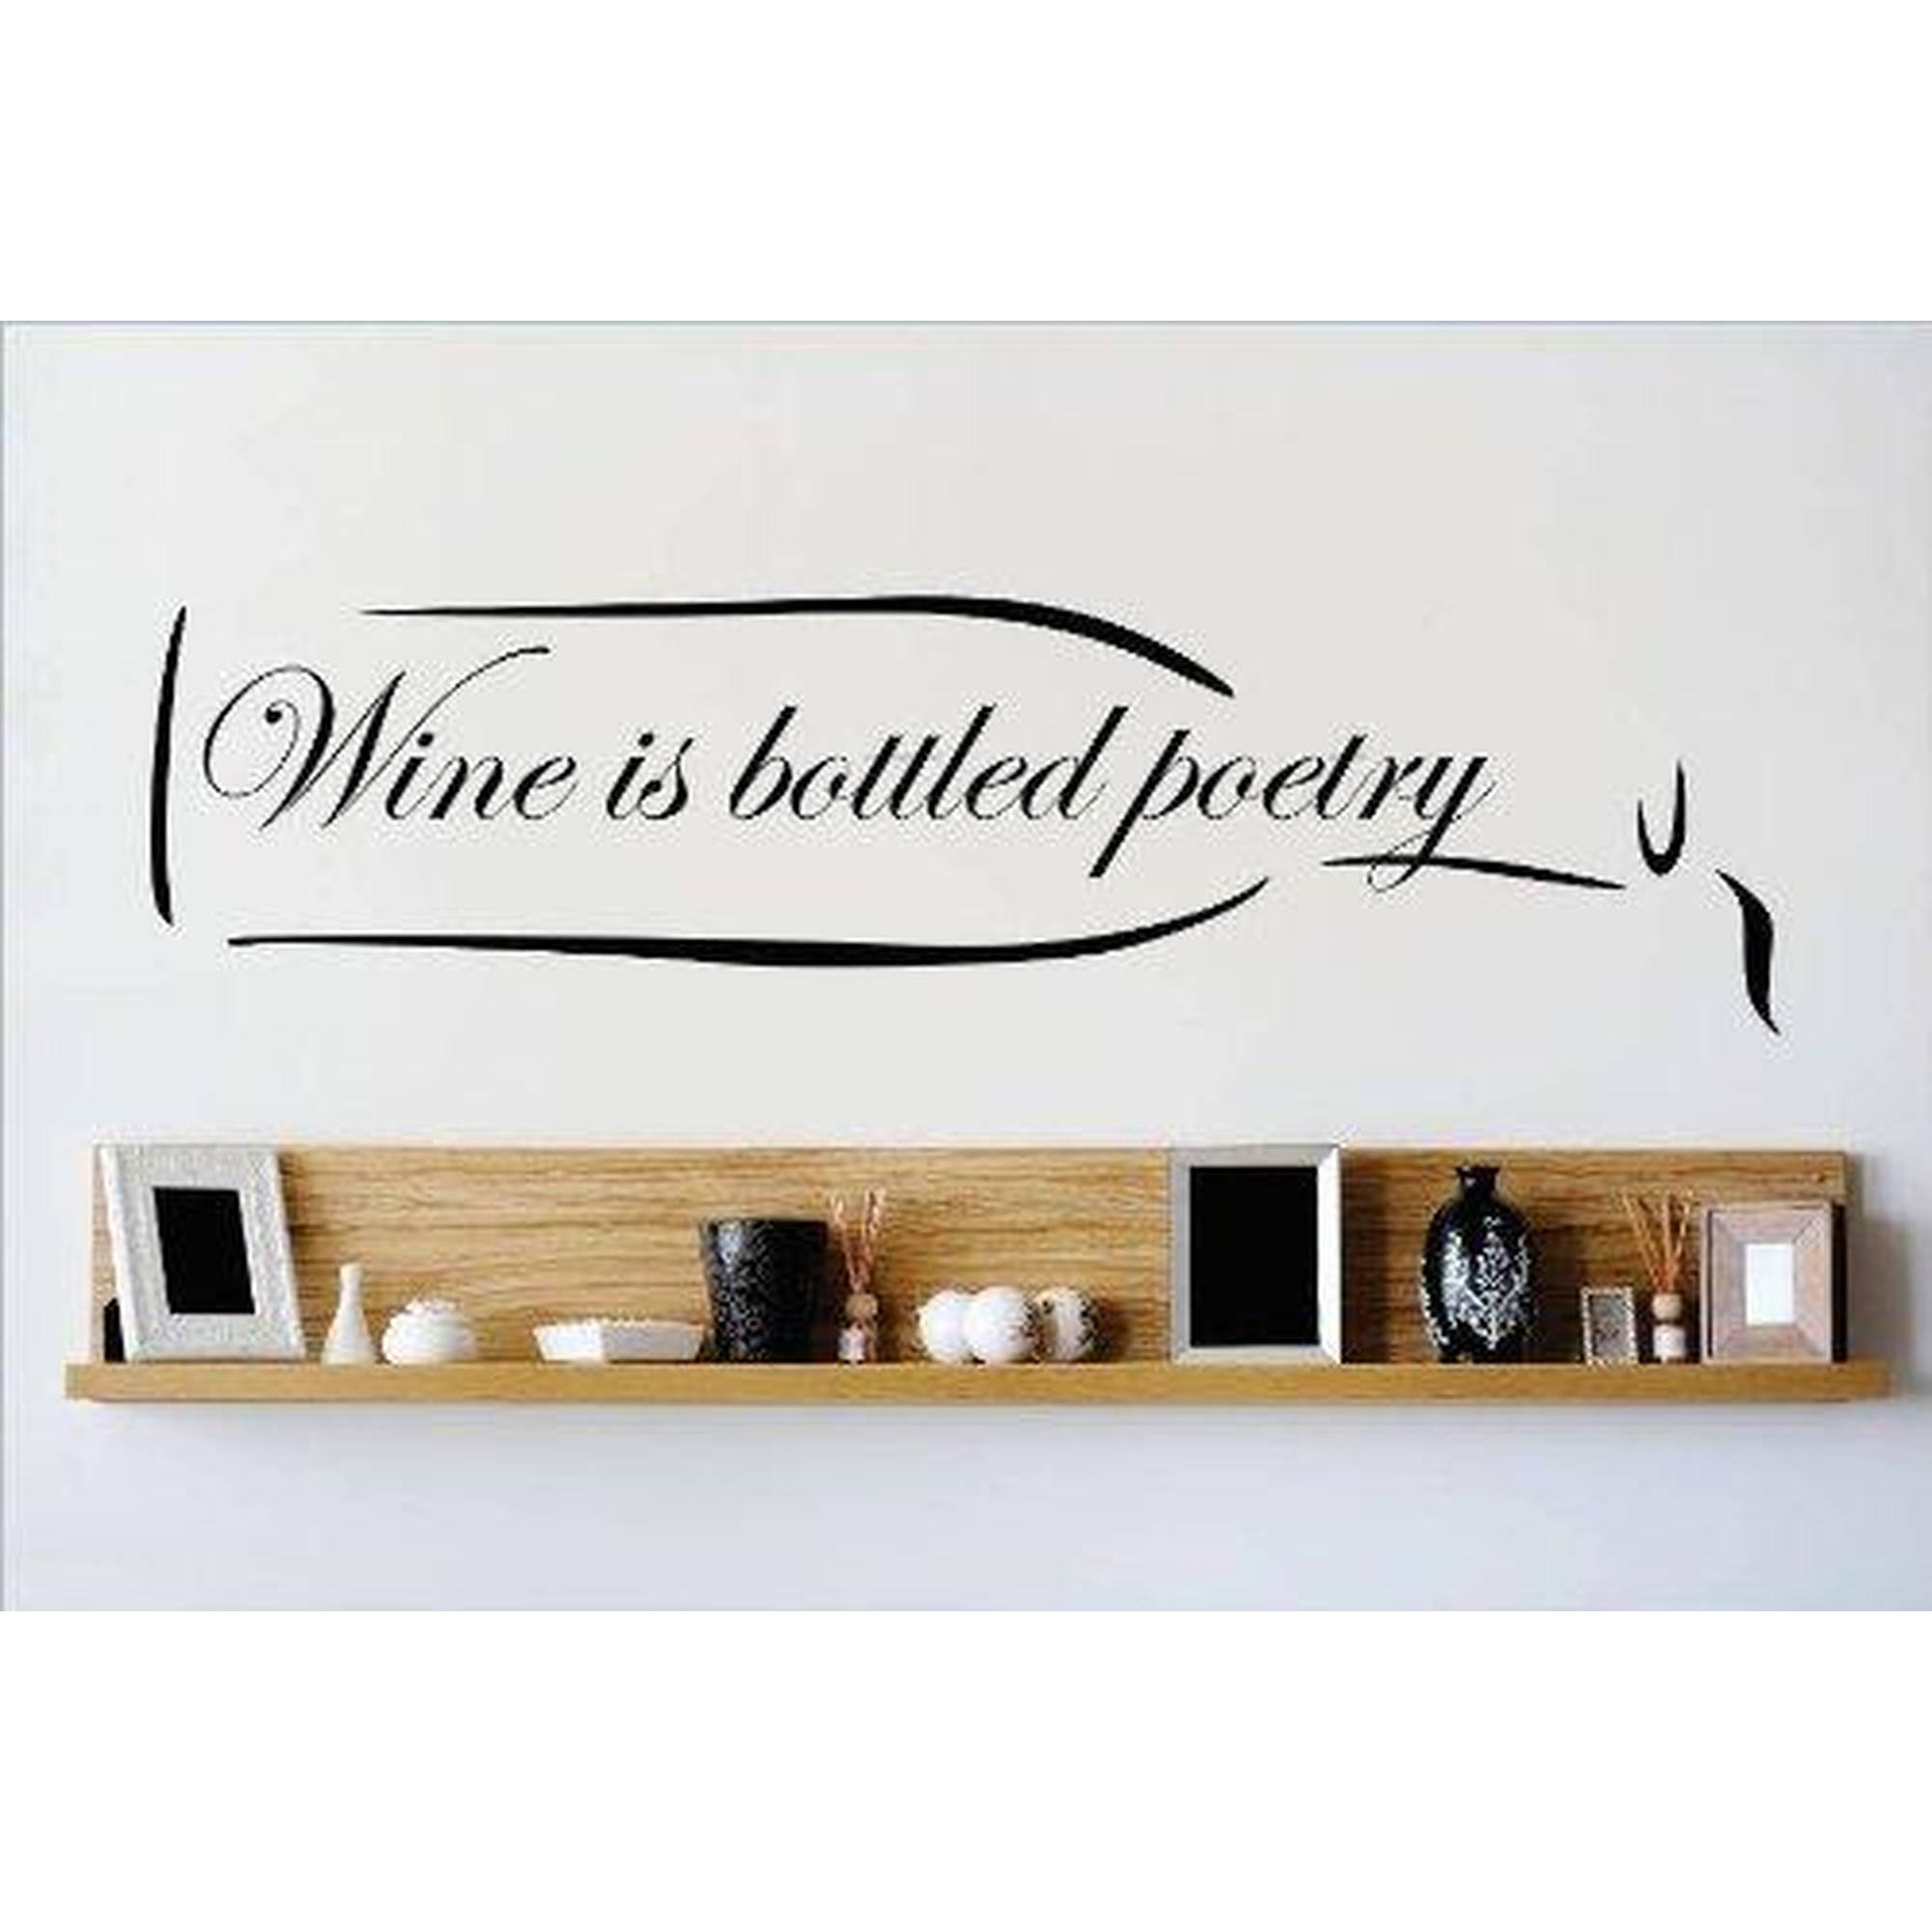 "Wine is Bottled Poetry Kitchen Vinyl Wall Decal, 5"" x 20"", Black"